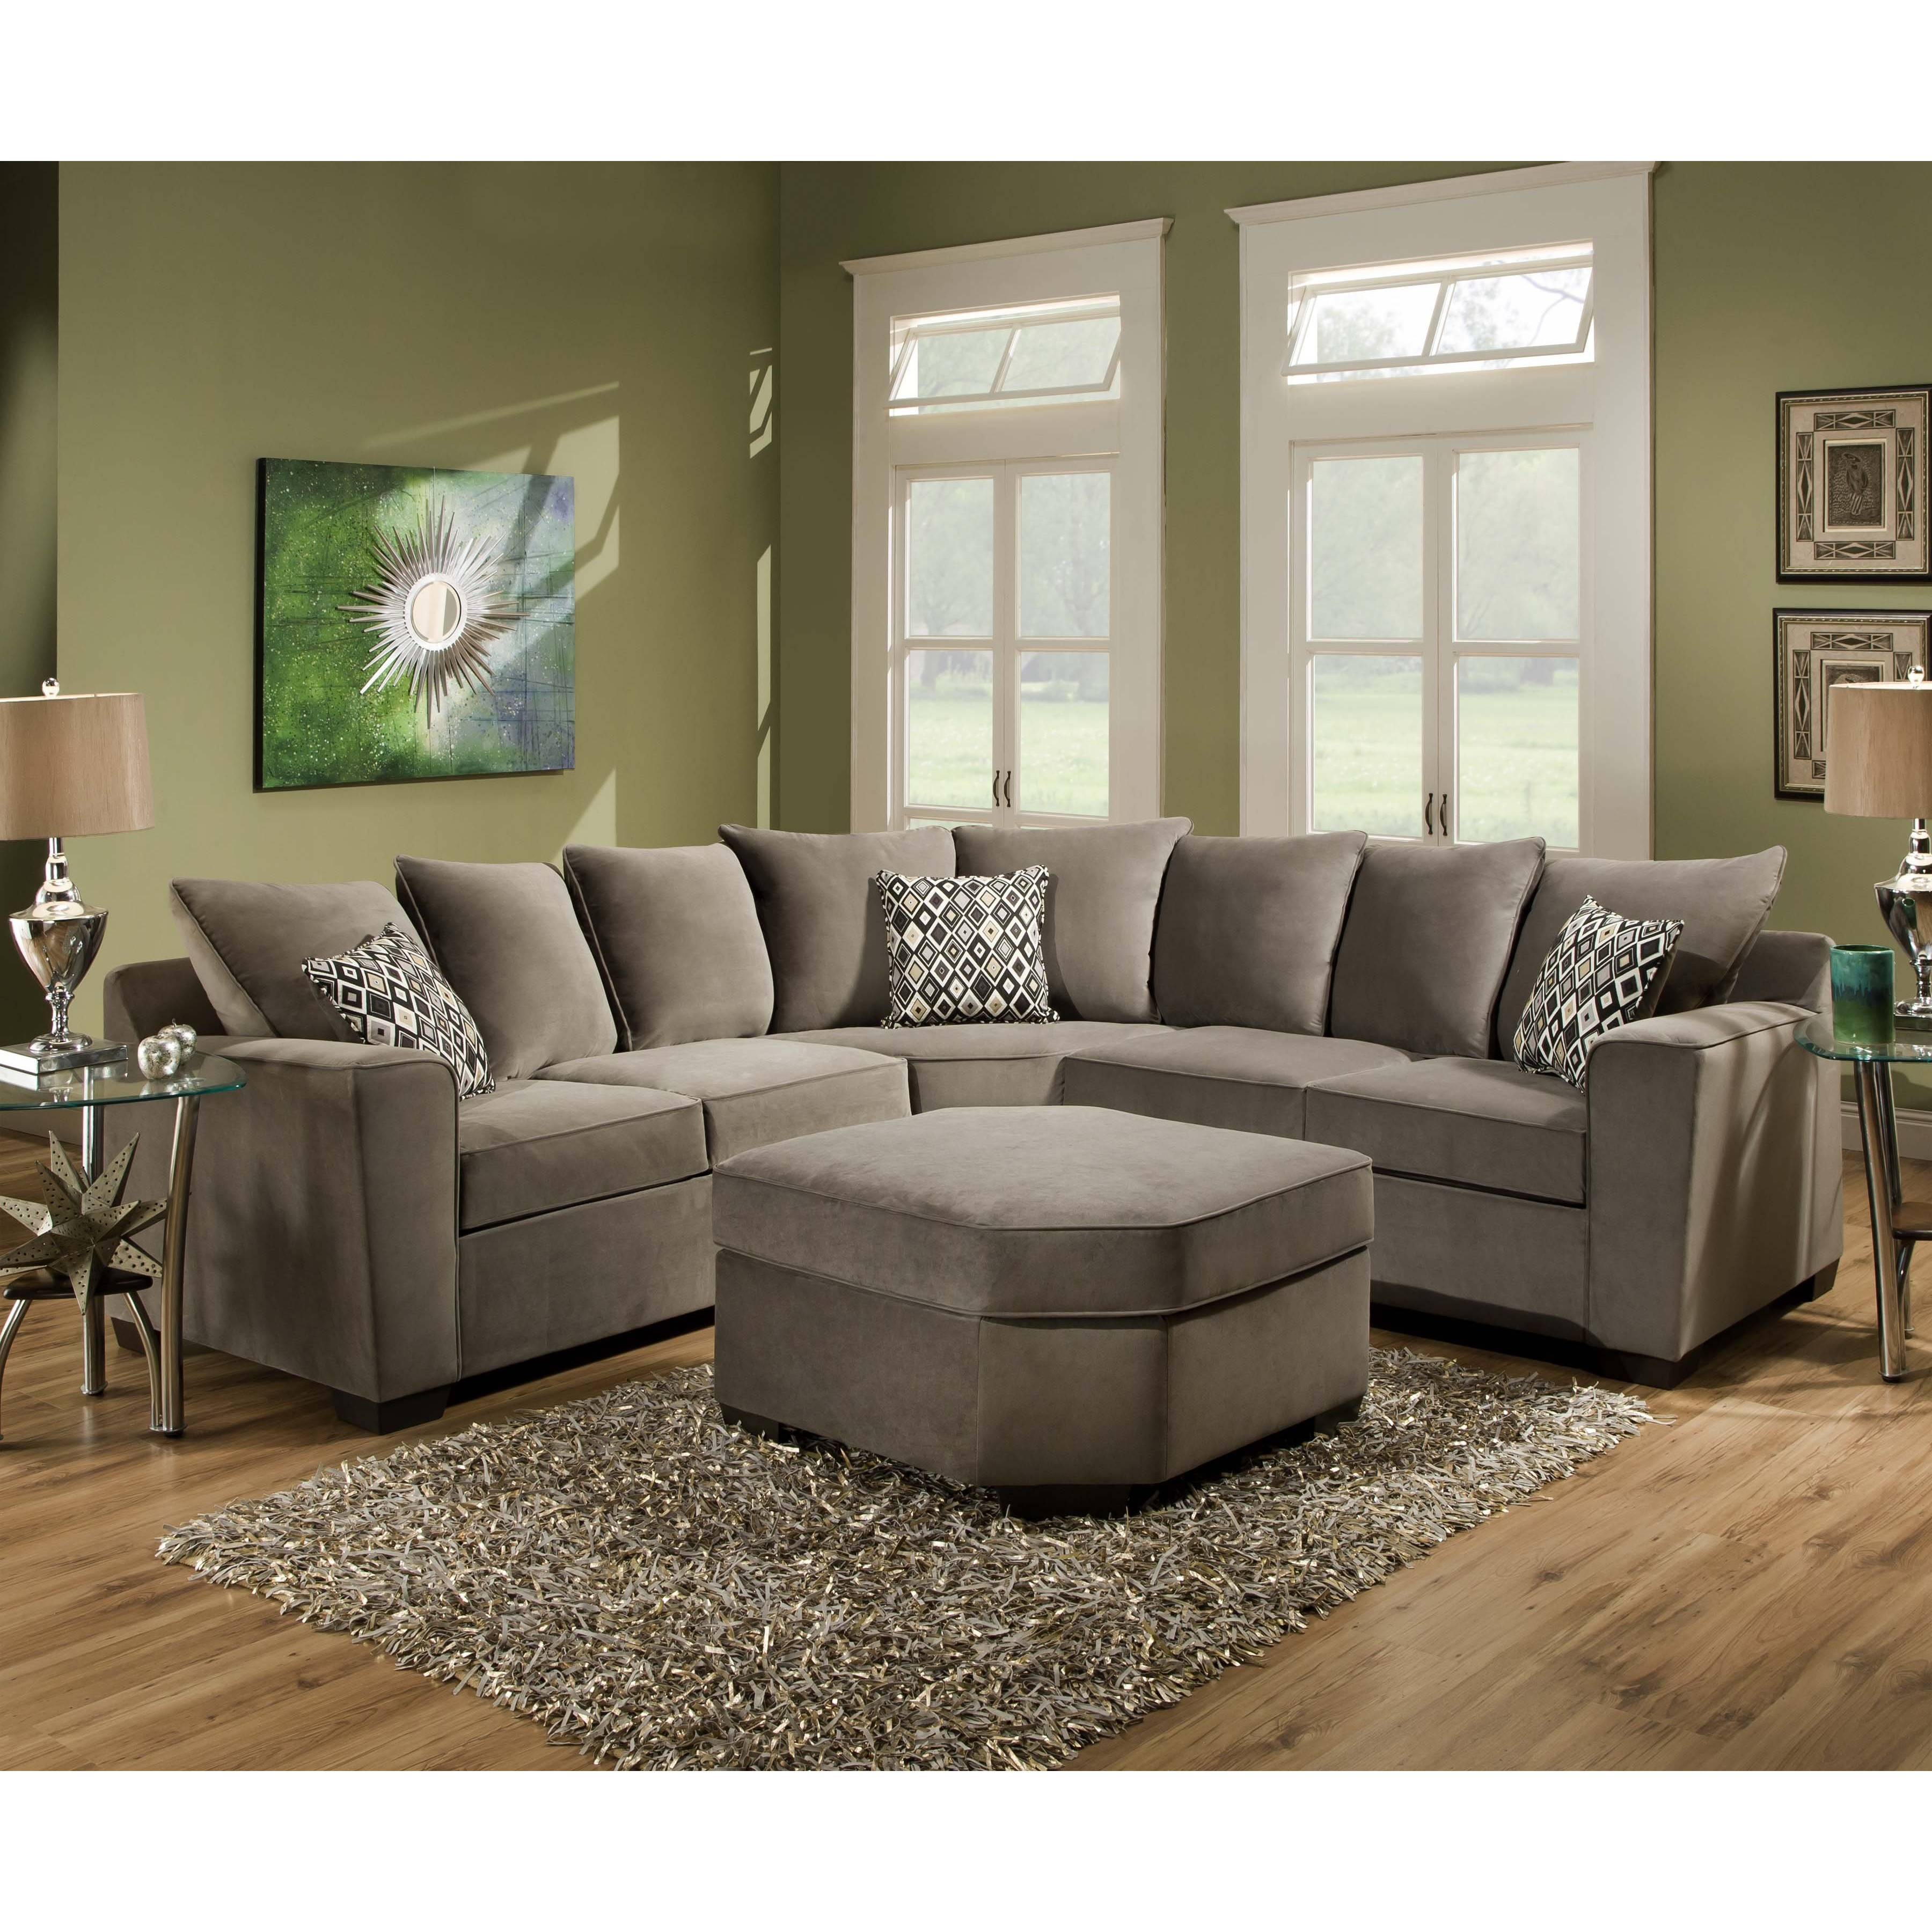 Epic Cheap U Shaped Sectional Sofas 35 About Remodel Backless With Backless Sectional Sofa (Image 10 of 15)